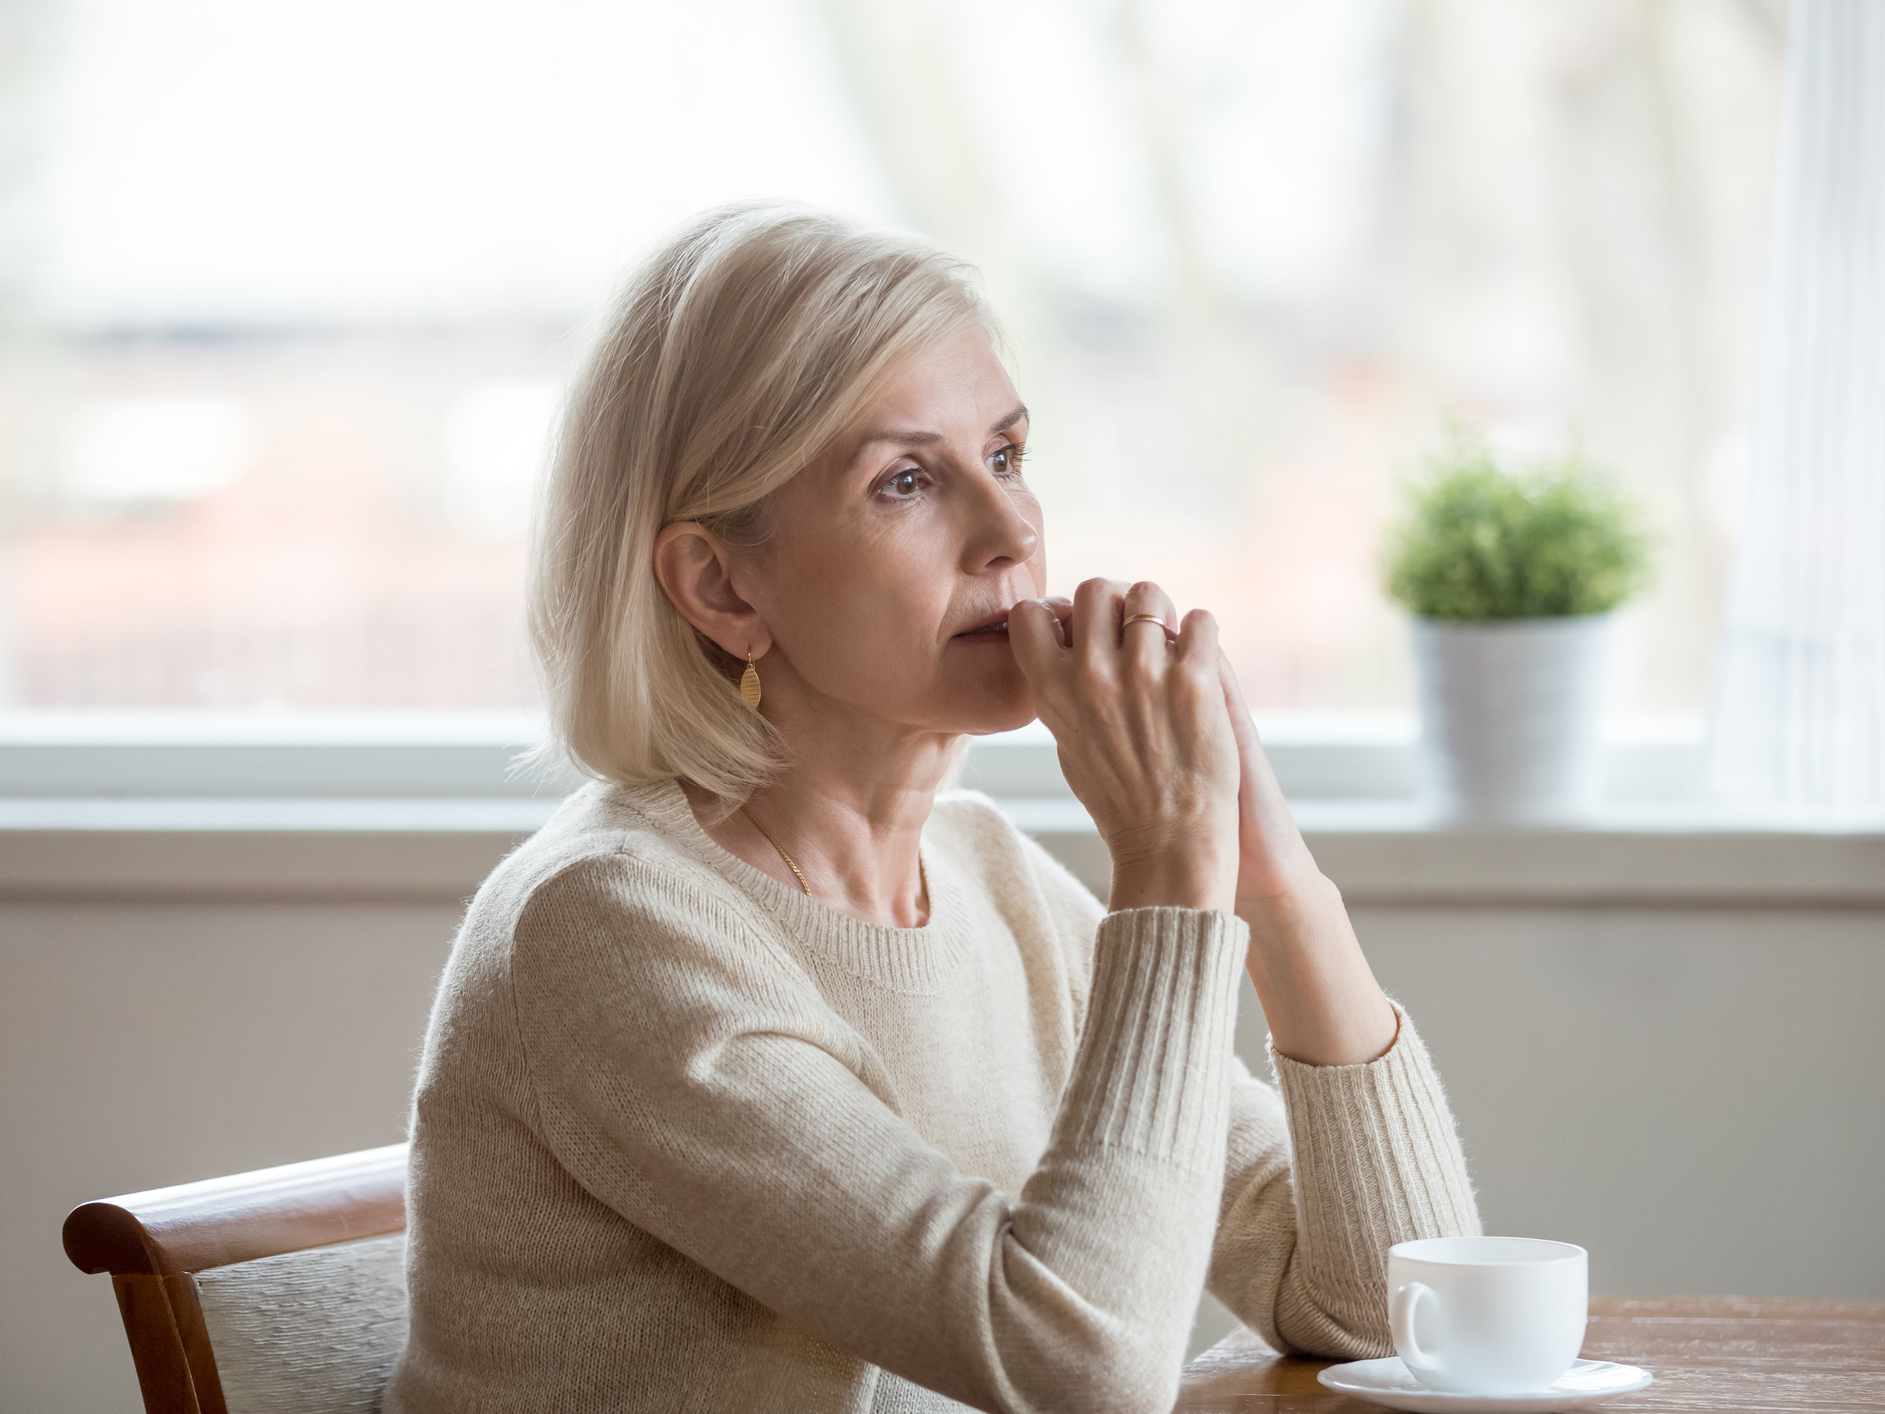 The depression symptom on your brain that could be Alzheimer's